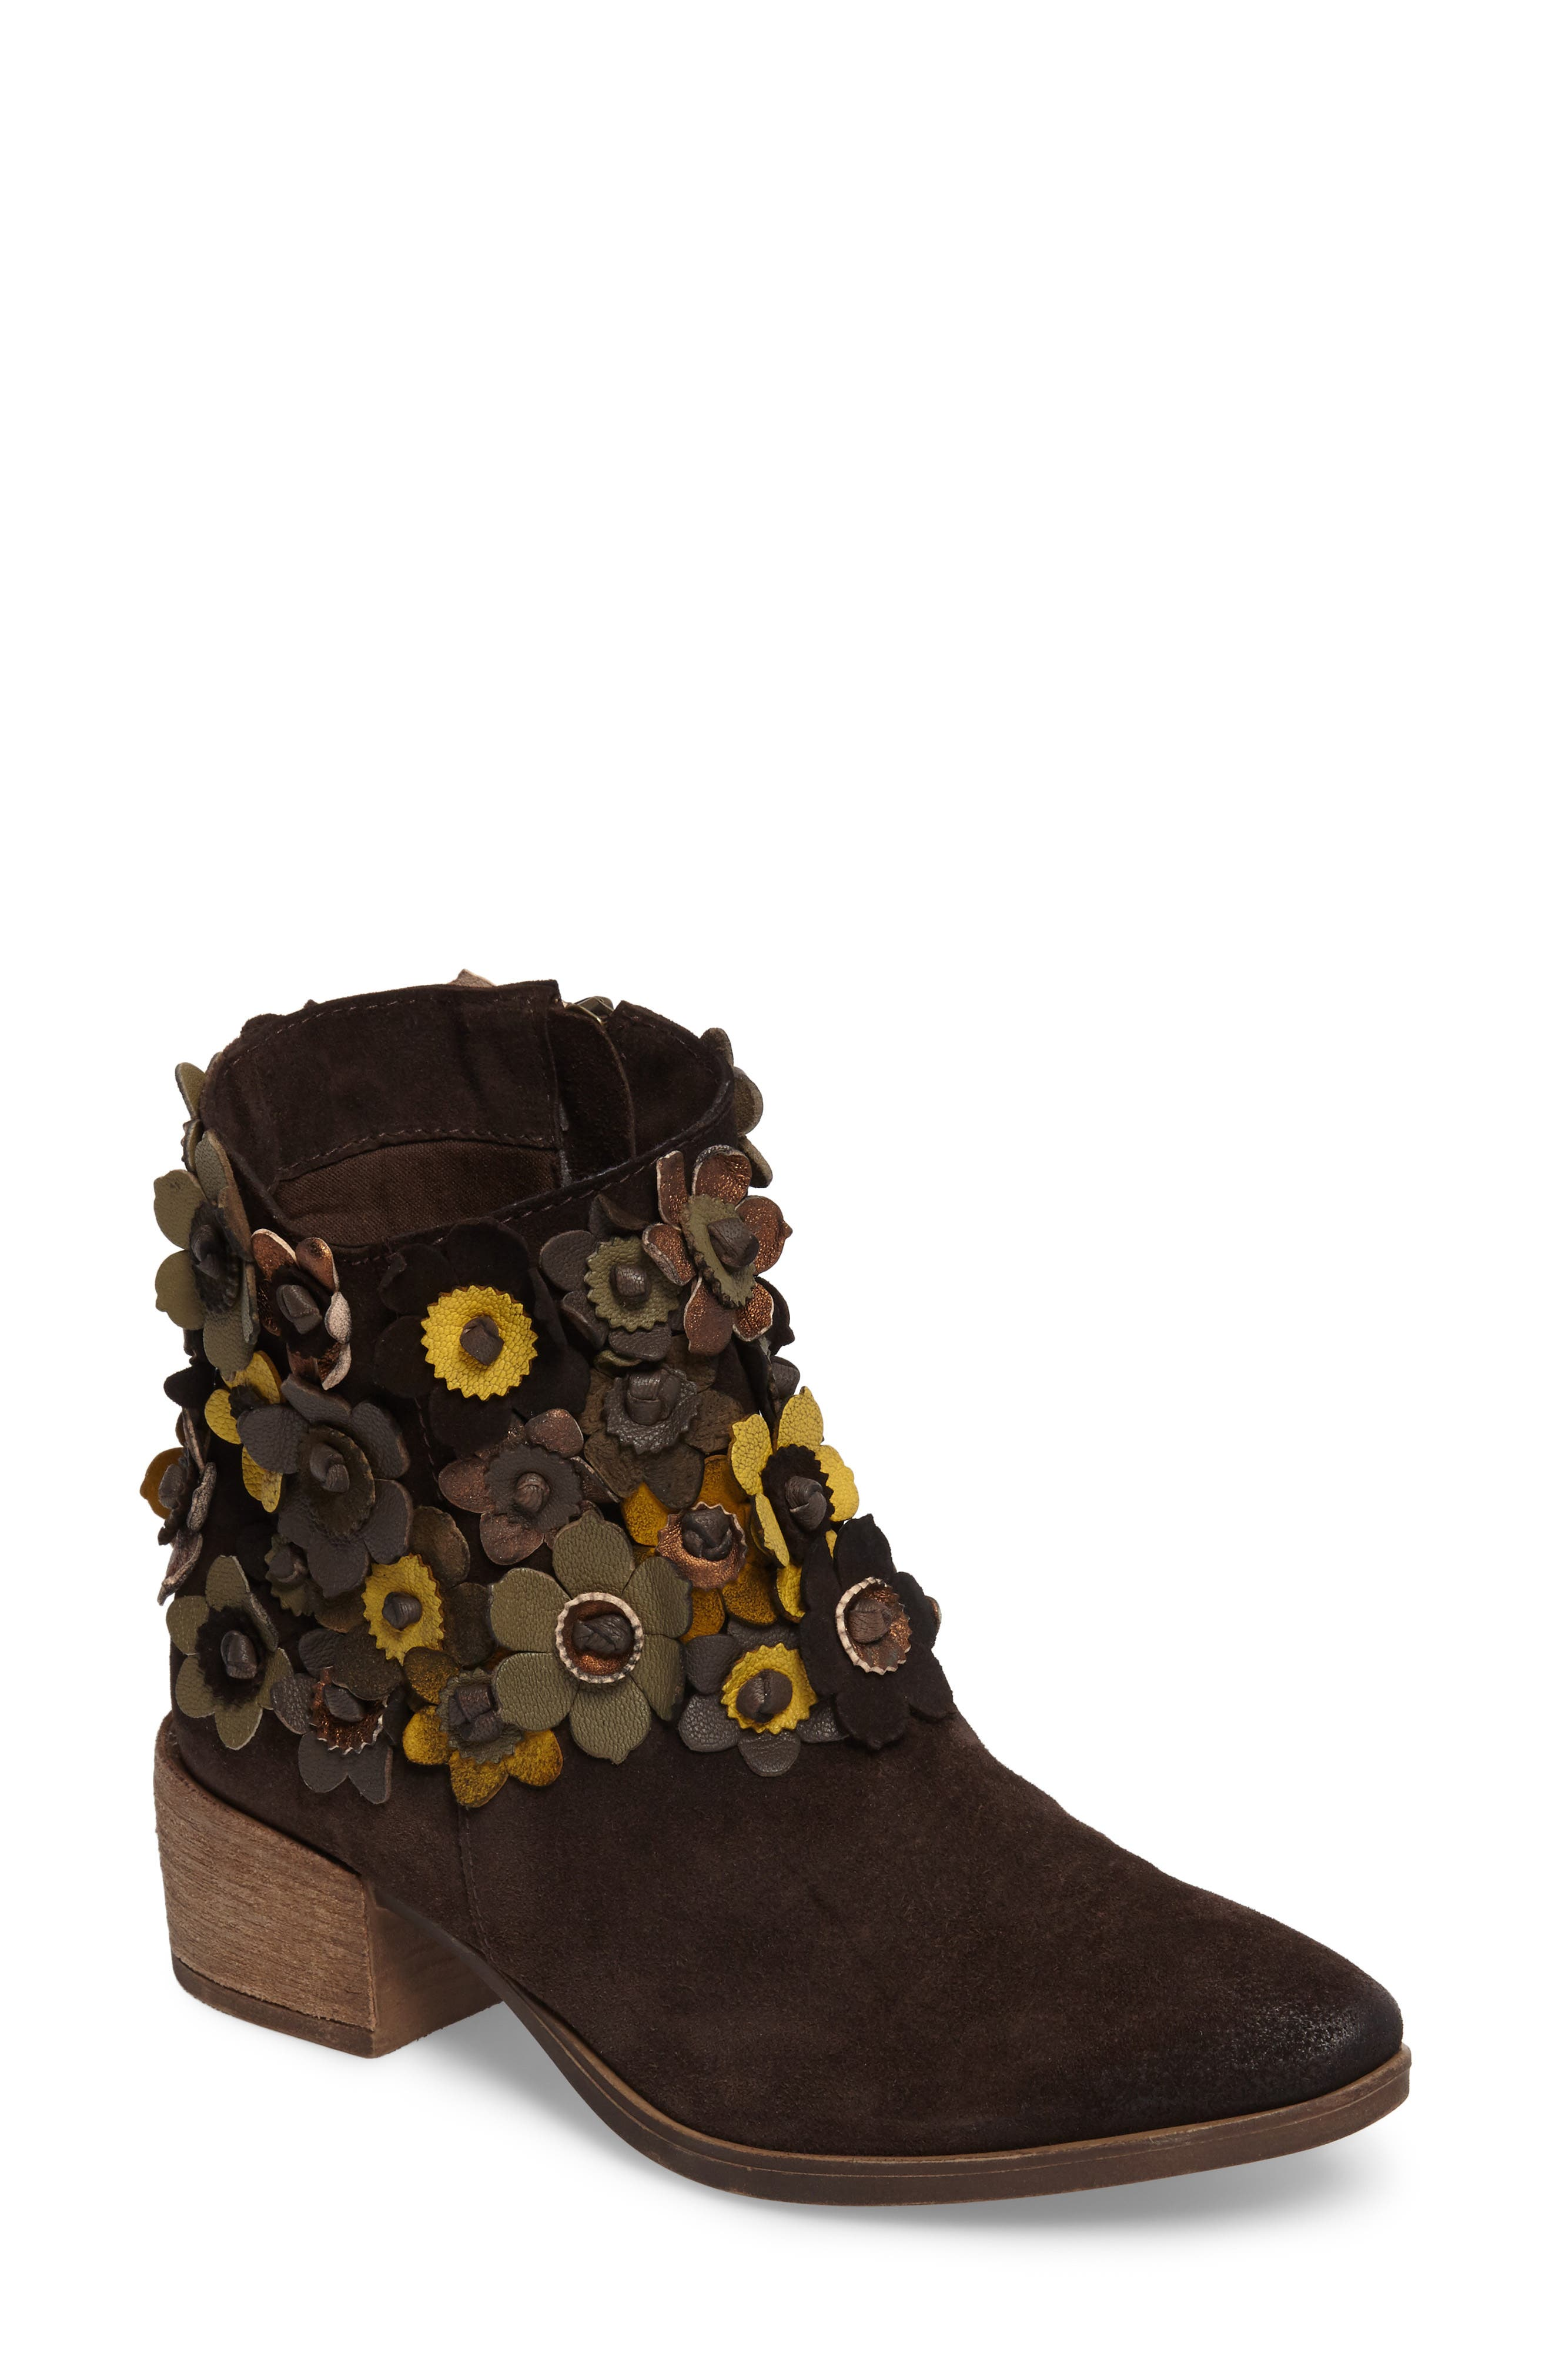 Sunflower Embellished Bootie,                         Main,                         color, Brown Suede